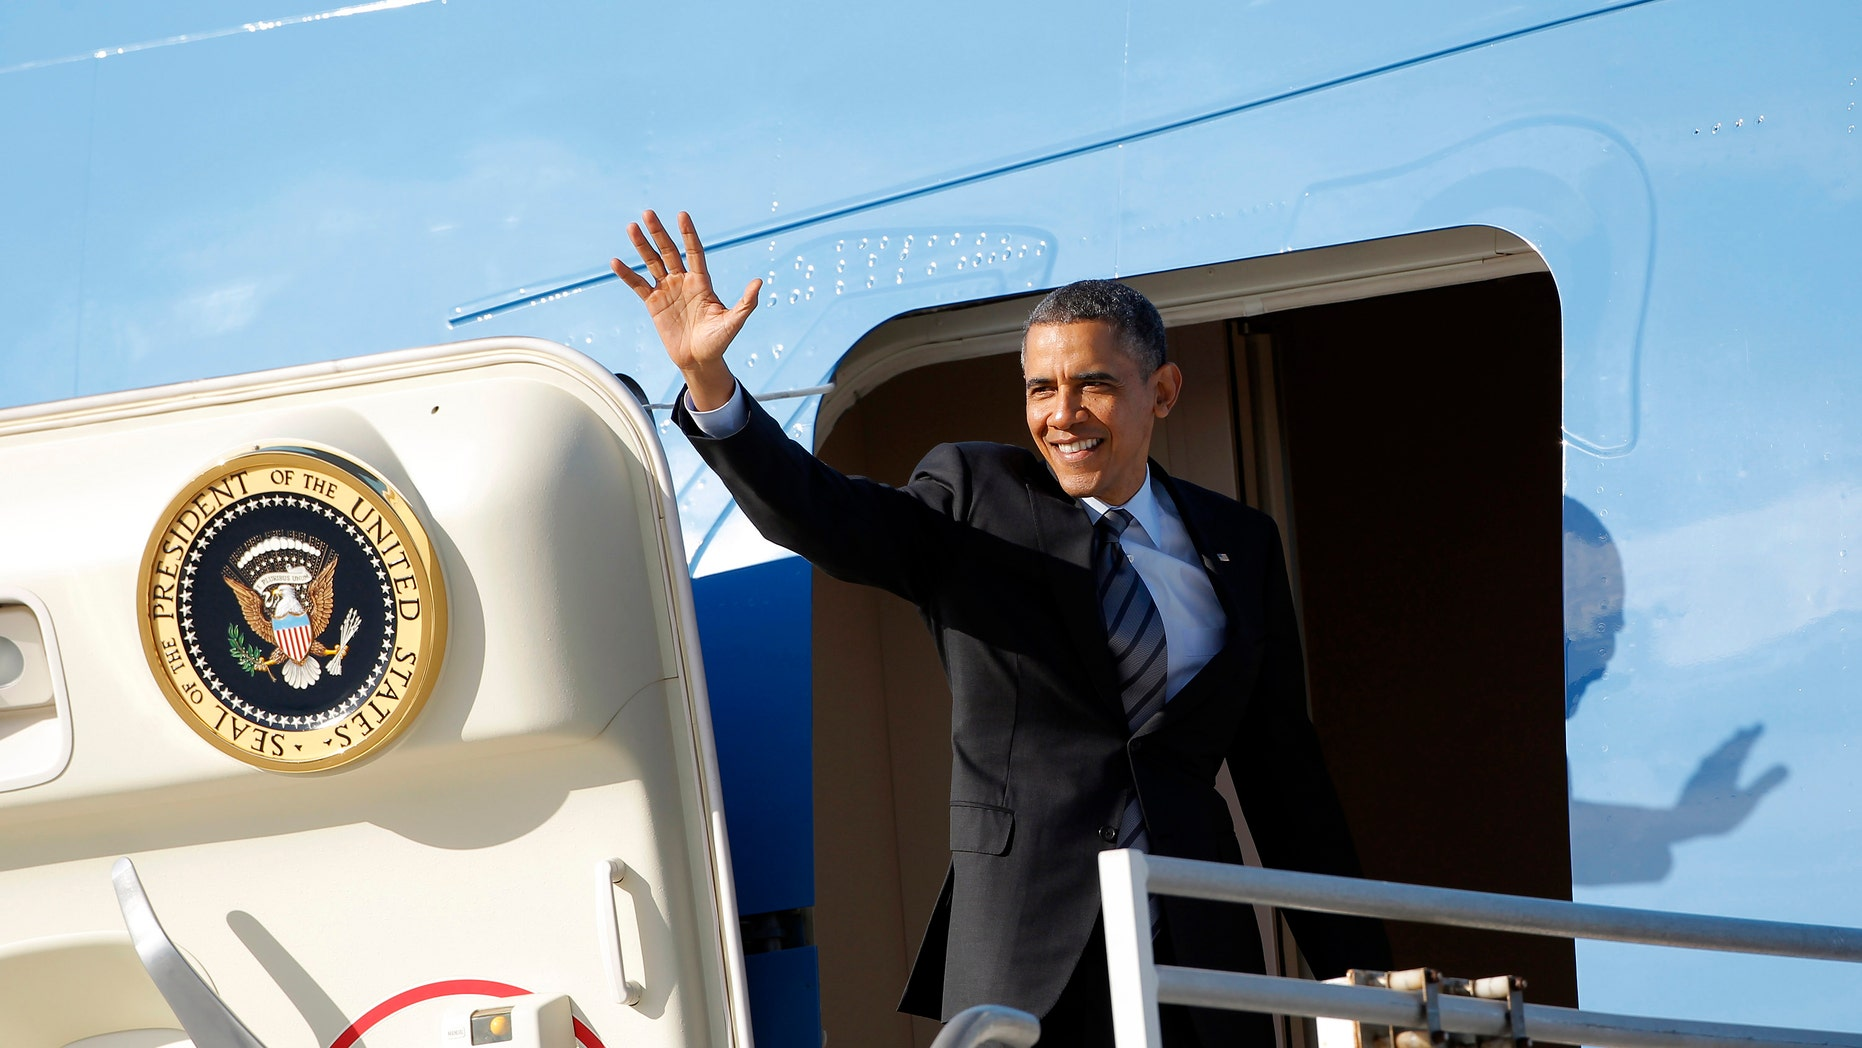 Nov 26, 2013: President Barack Obama waves as he leaves Los Angeles International Airport.